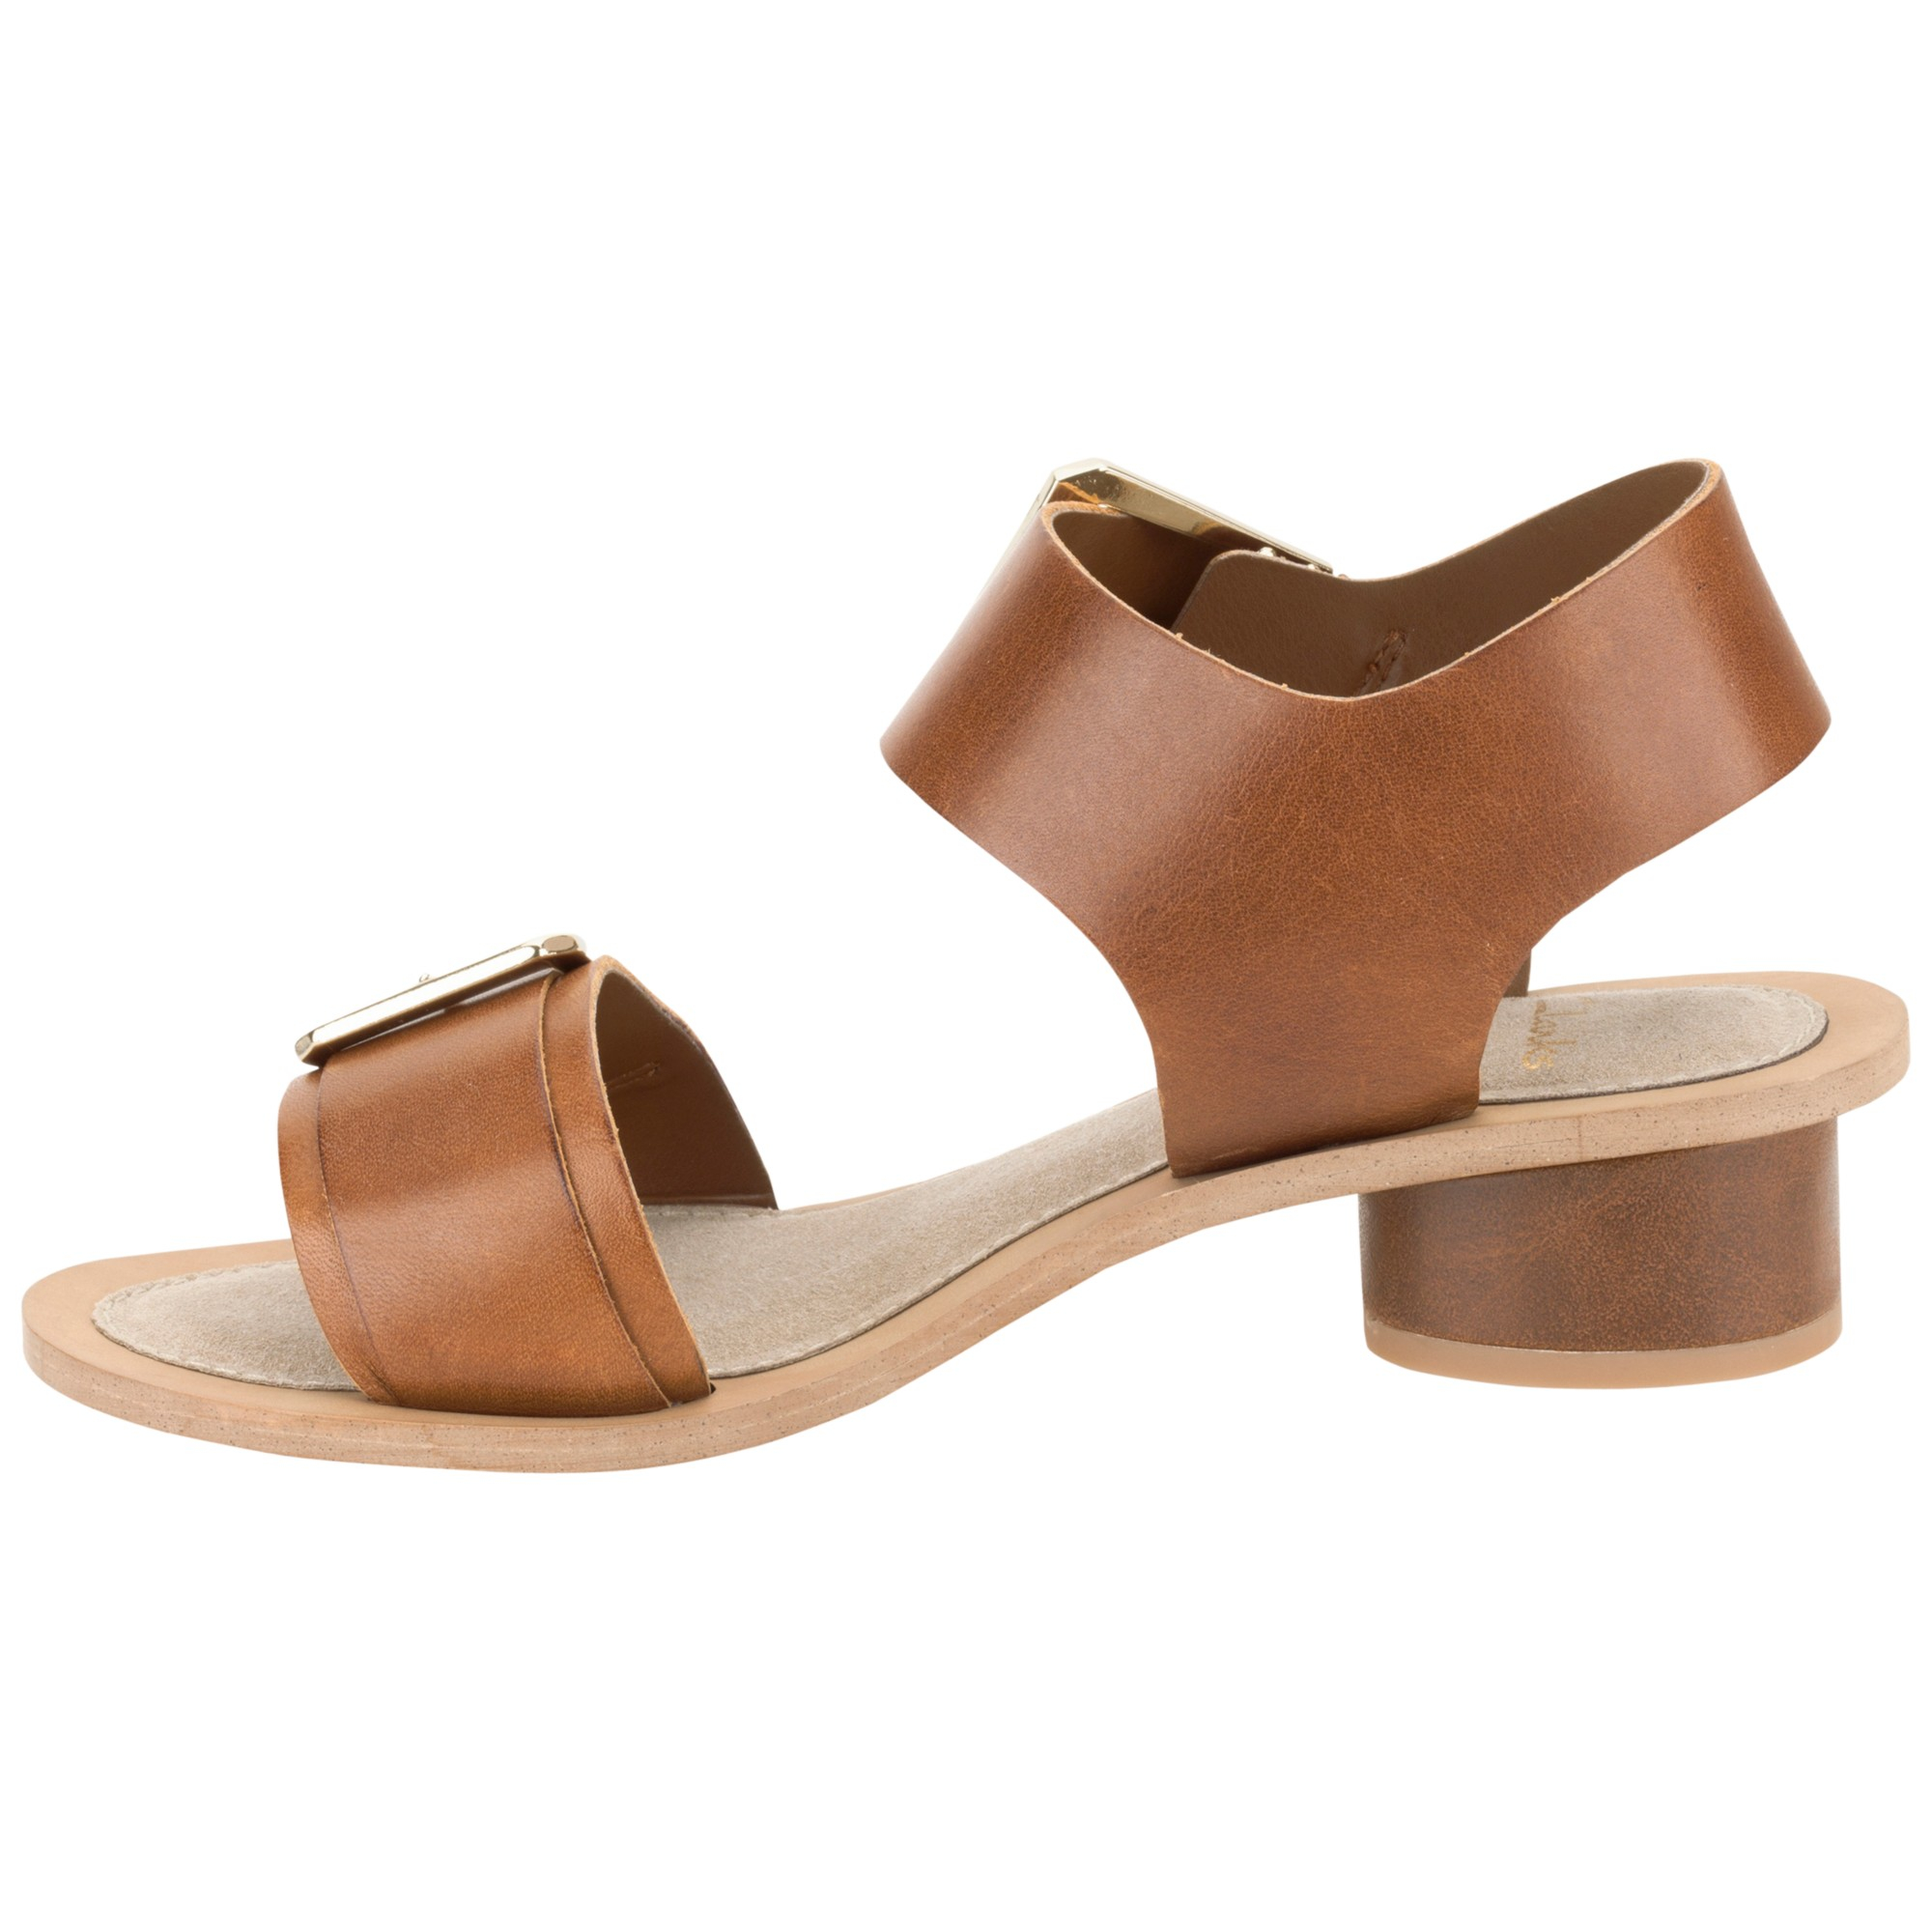 7352d3606 Clarks Sandcastle Art Leather Sandals in Brown - Lyst